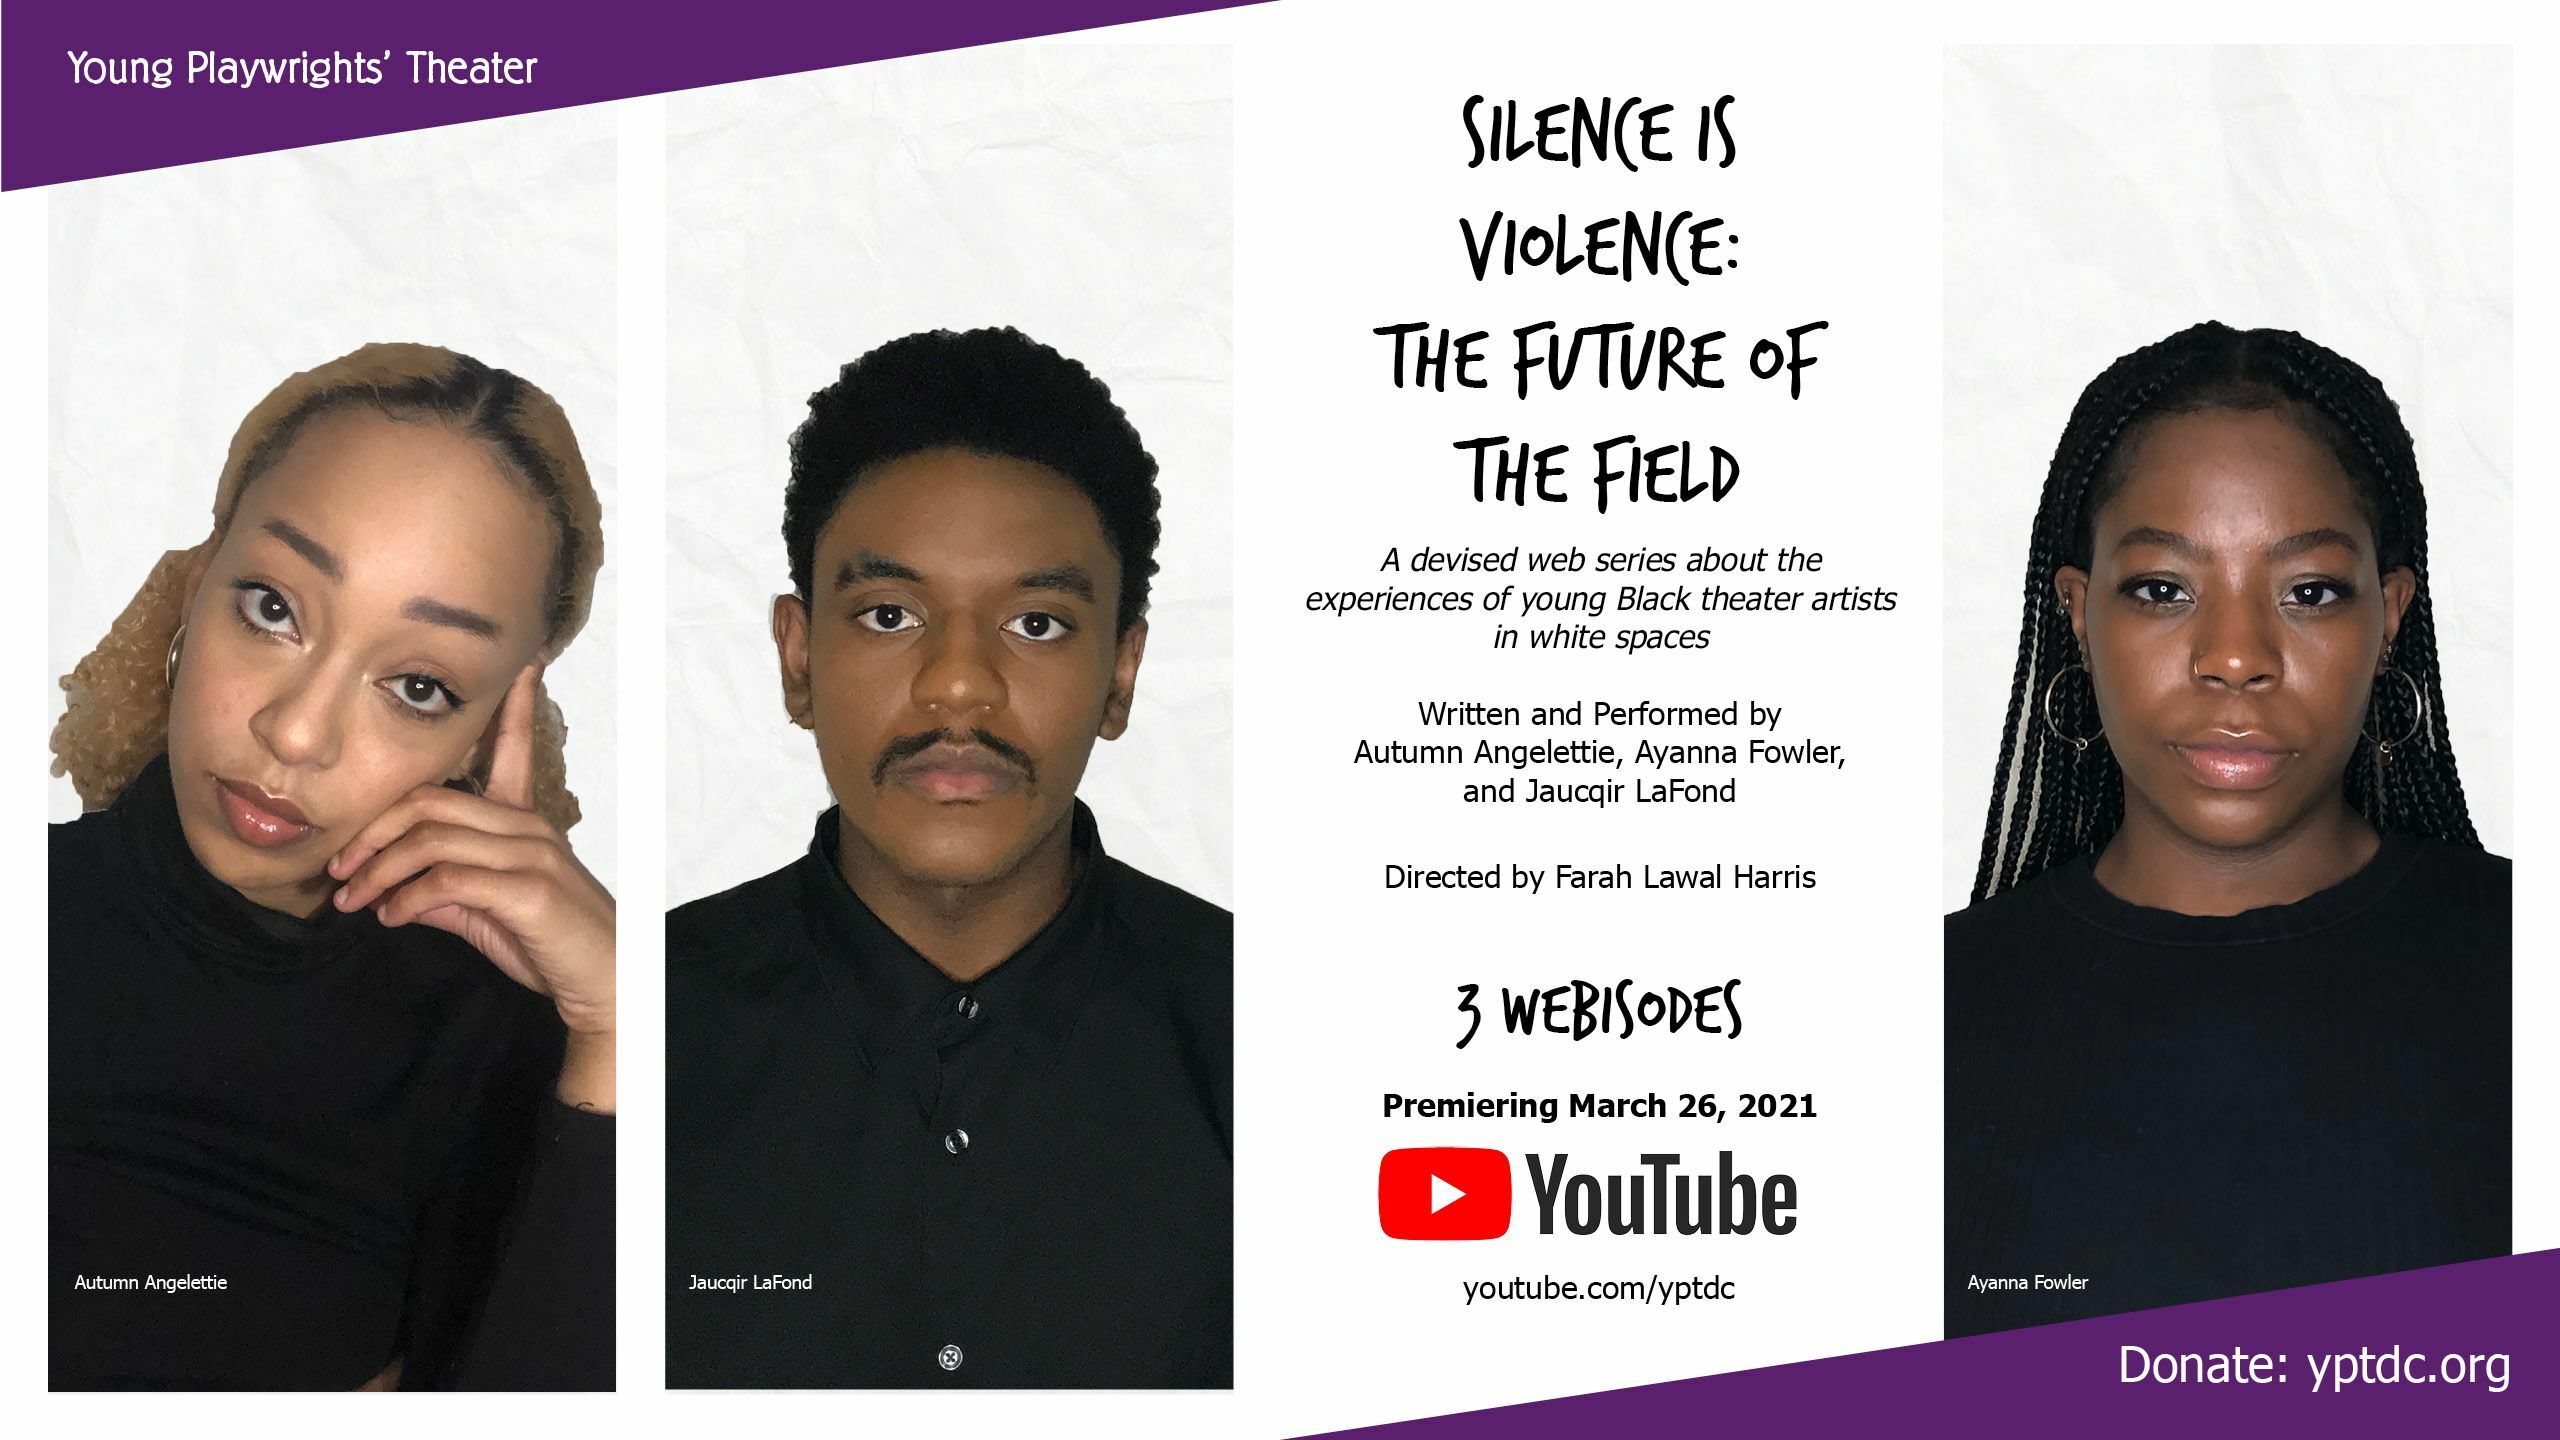 Silence is Violence: The Future of the Field (Web Series Premiere)